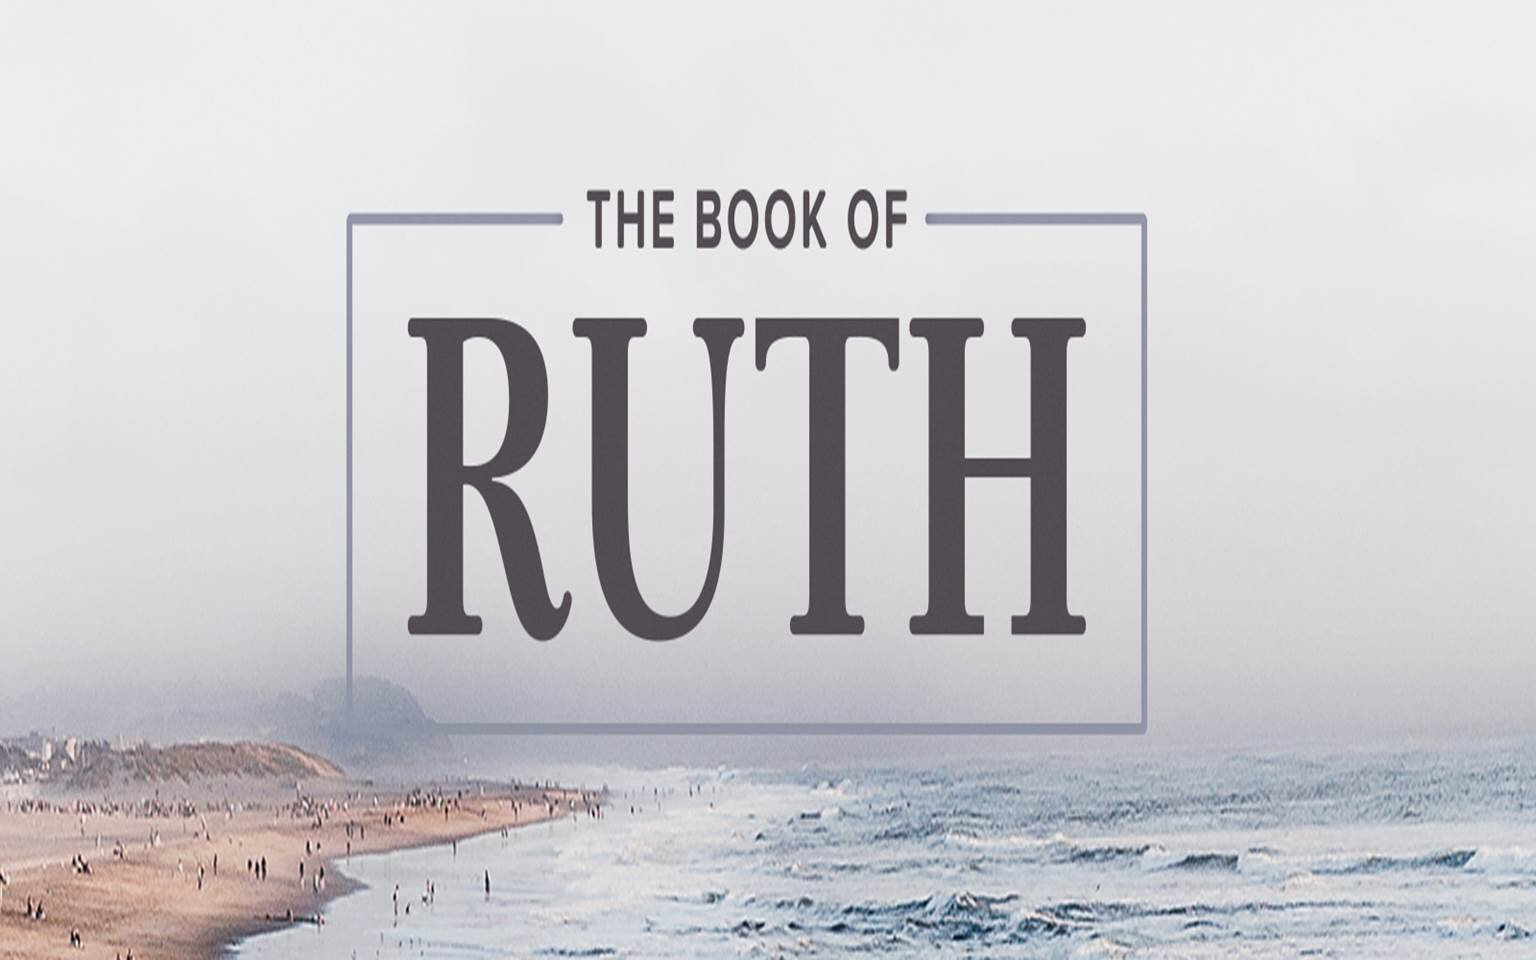 the book of ruth .jpg